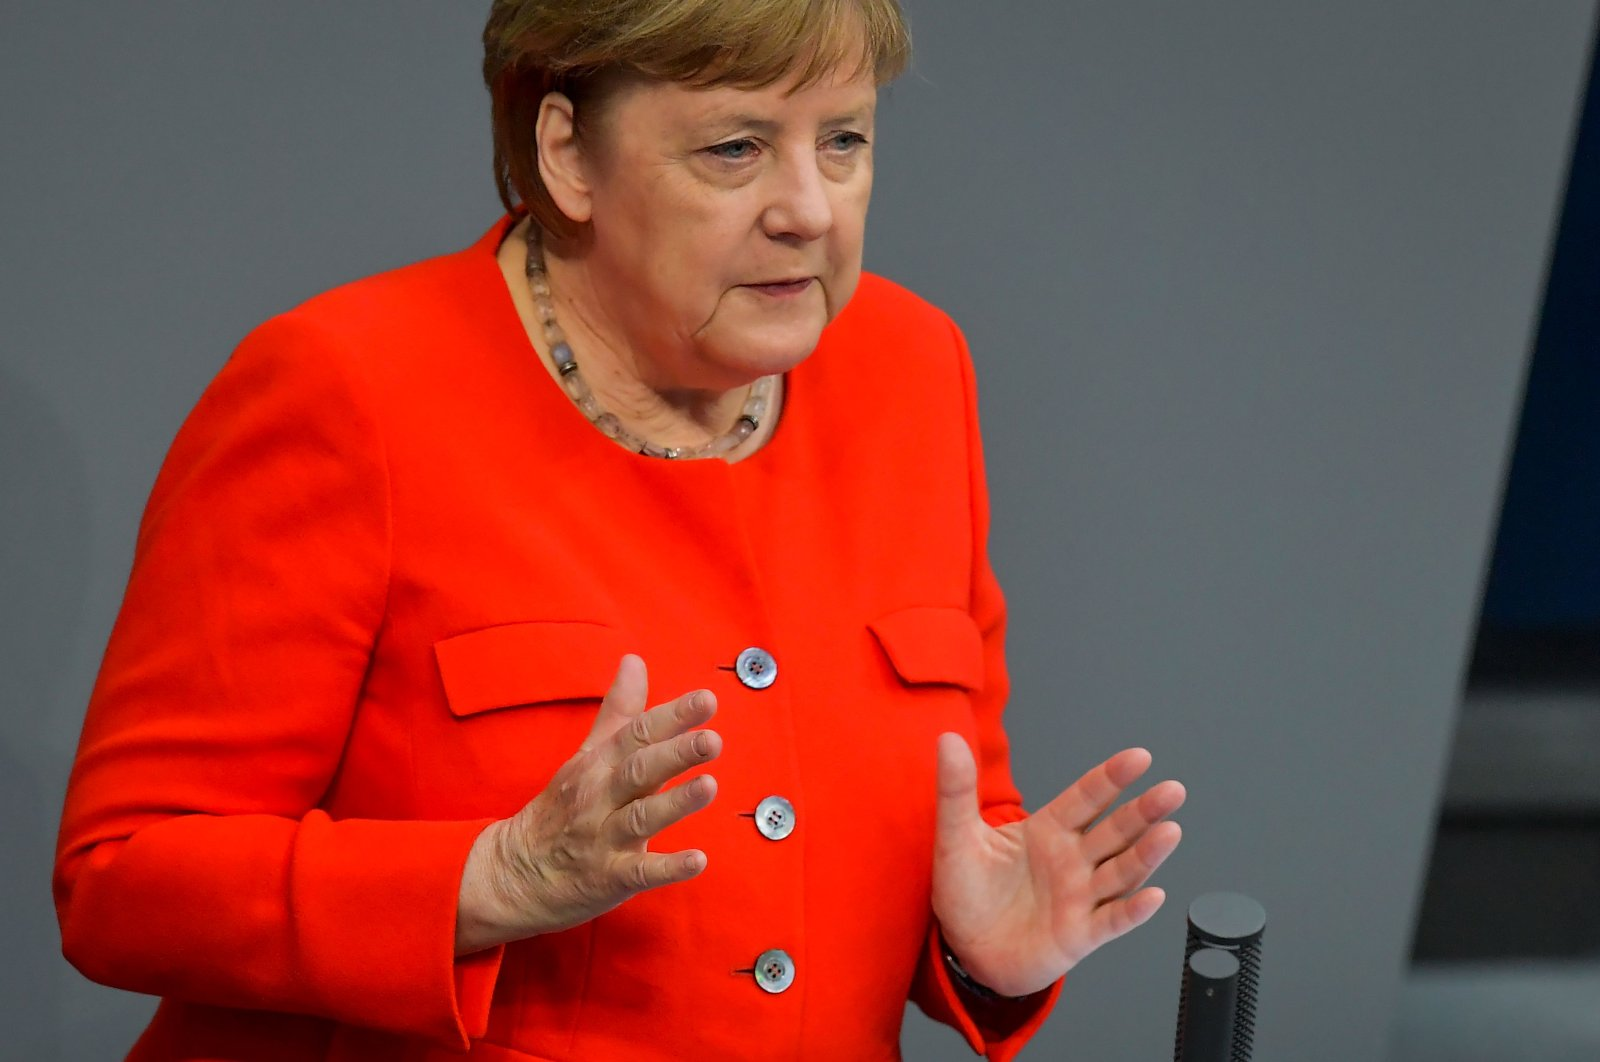 German Chancellor Angela Merkel speaks during a sitting of the Bundestag, Germany's lower house of parliament in Berlin, June 18, 2020. (AFP Photo)